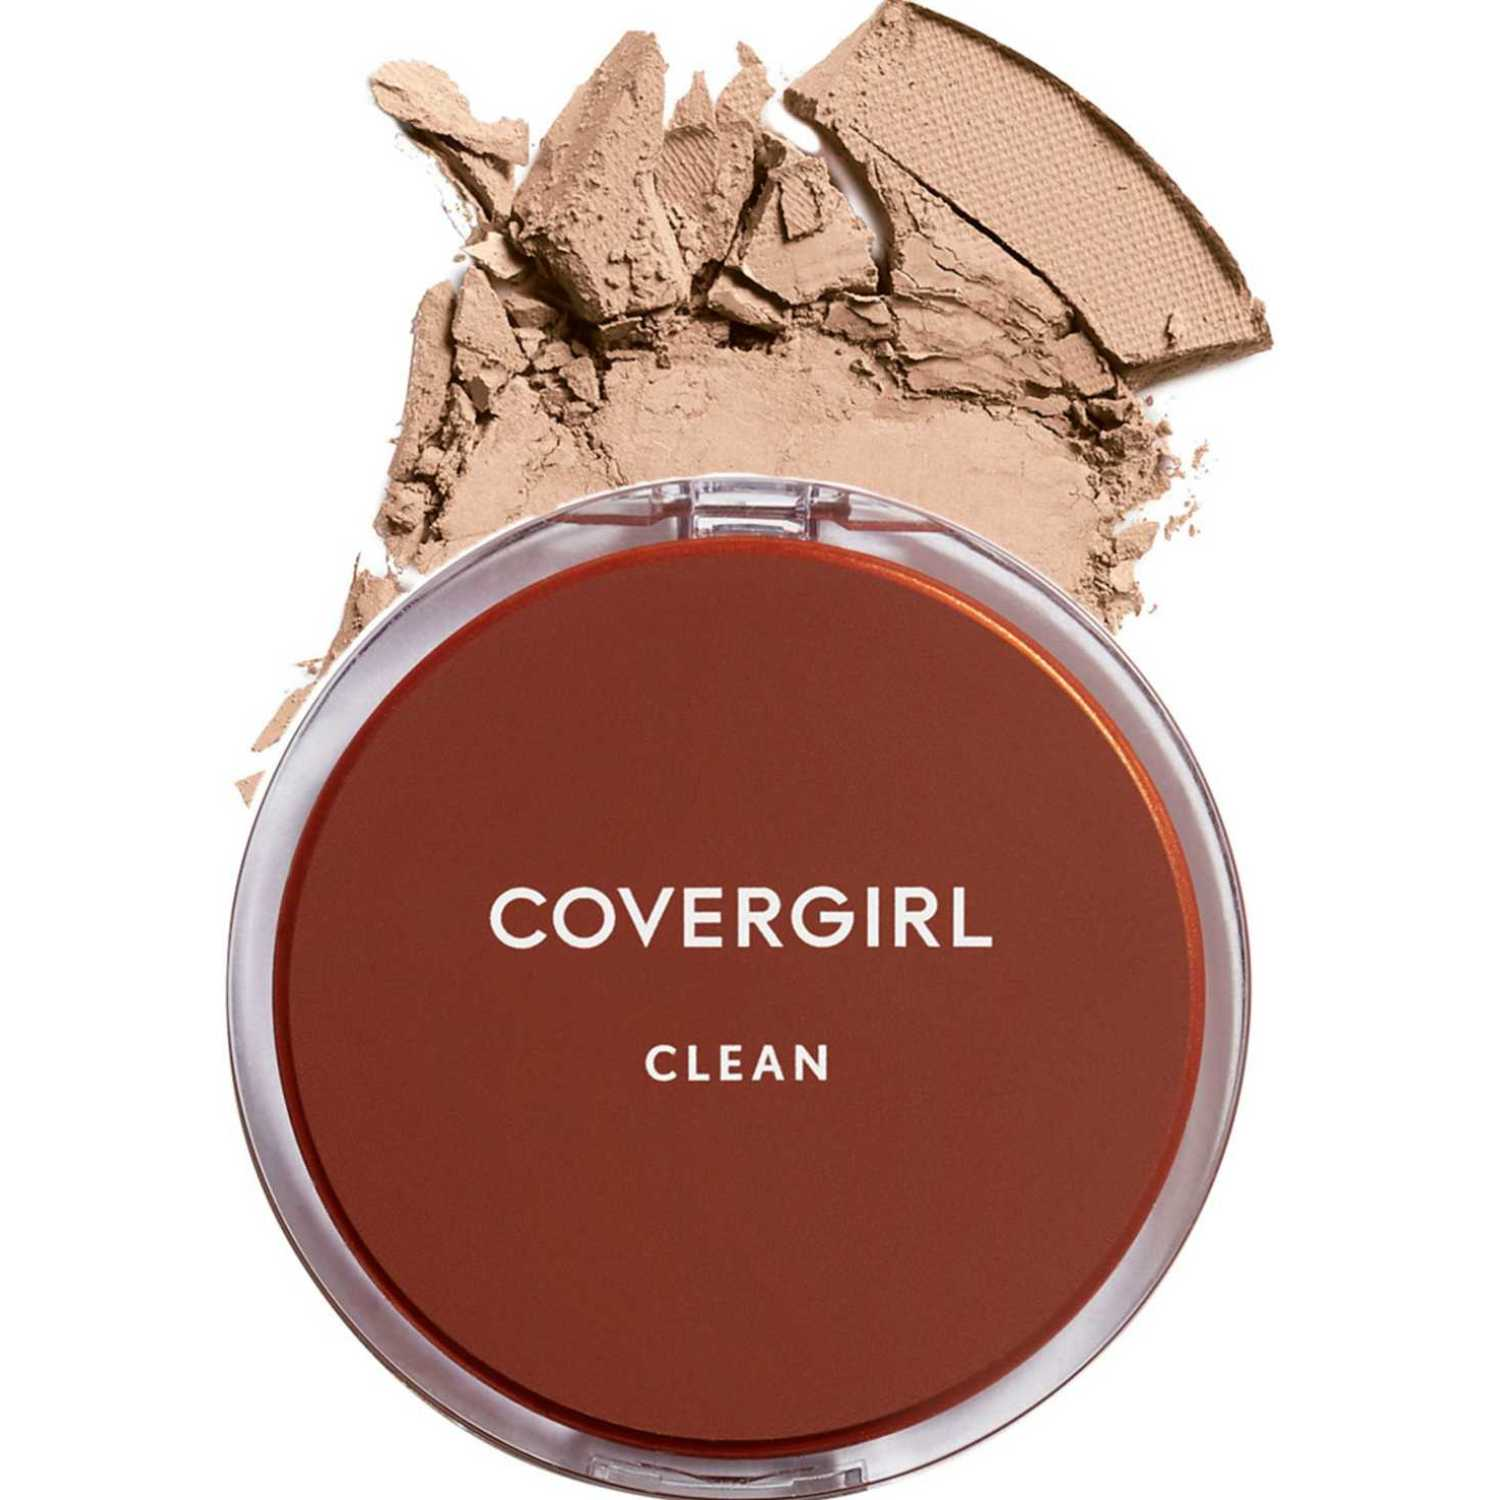 Covergirl Polvos Clean Classic Beige Correctores y neutralizadores